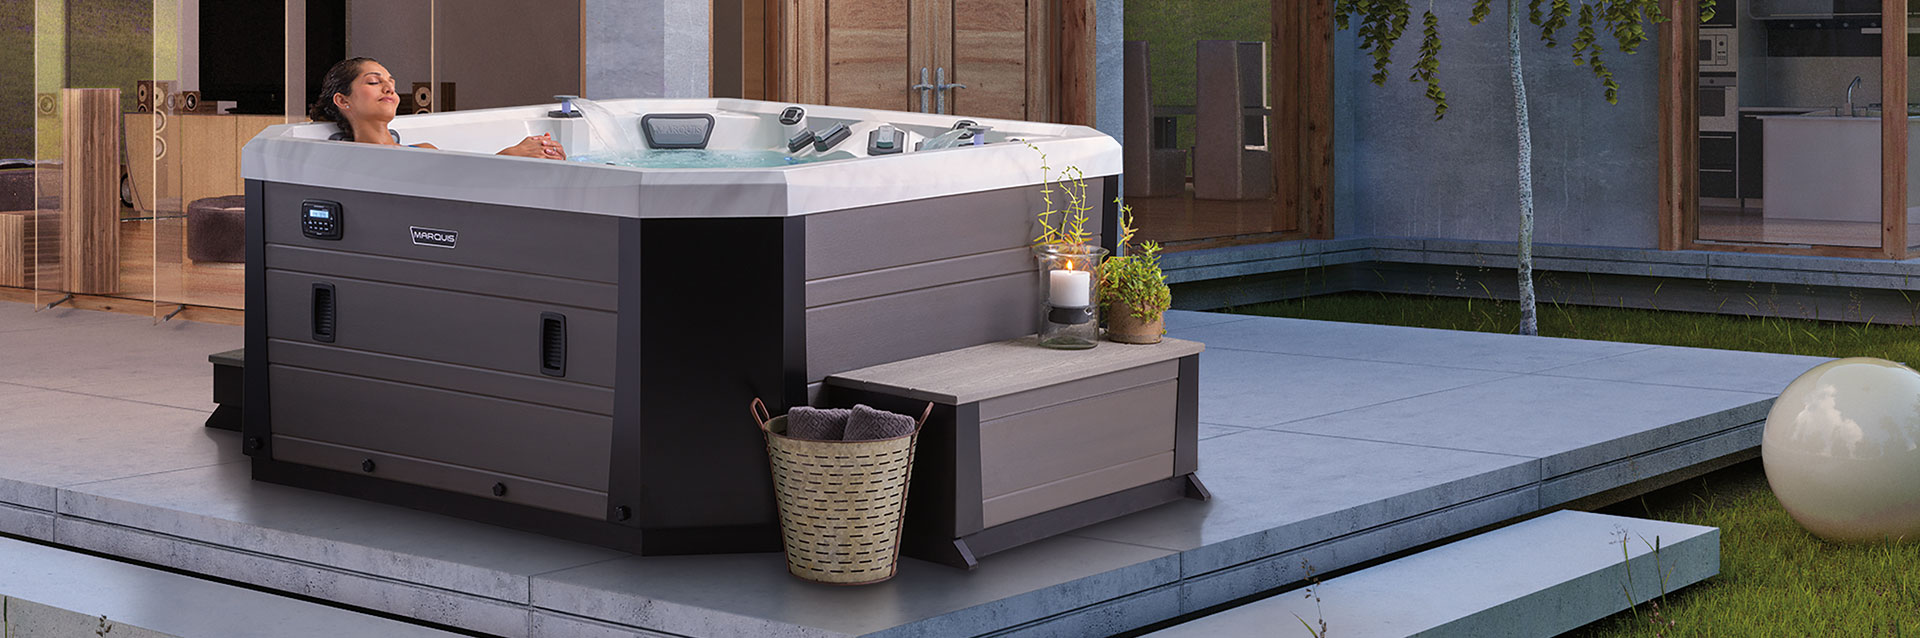 Marquis Vector21 Hot Tub Environments